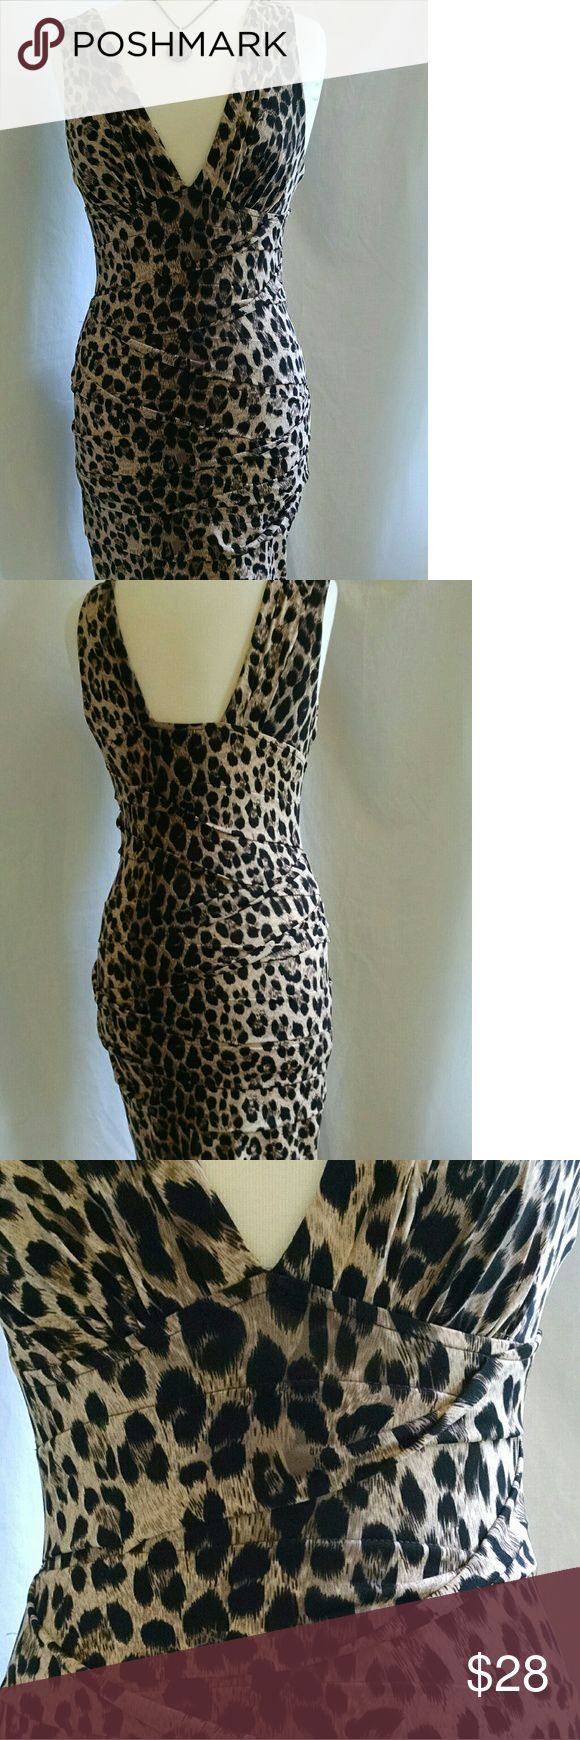 Forever 21 animal print bodycon dress M Sexy body hugging dress has plunge neckline and back. Poly spandex fabric has unique zigzag zag fold design that hides flaws and hold you in. This dress is very flattering. Above knee and runs small. Excellent condition. Clean and ready to wear. SIZE M, but go by these Measurements :bust fits 32-36, waist 28-30. More like a small Forever 21 Dresses Mini